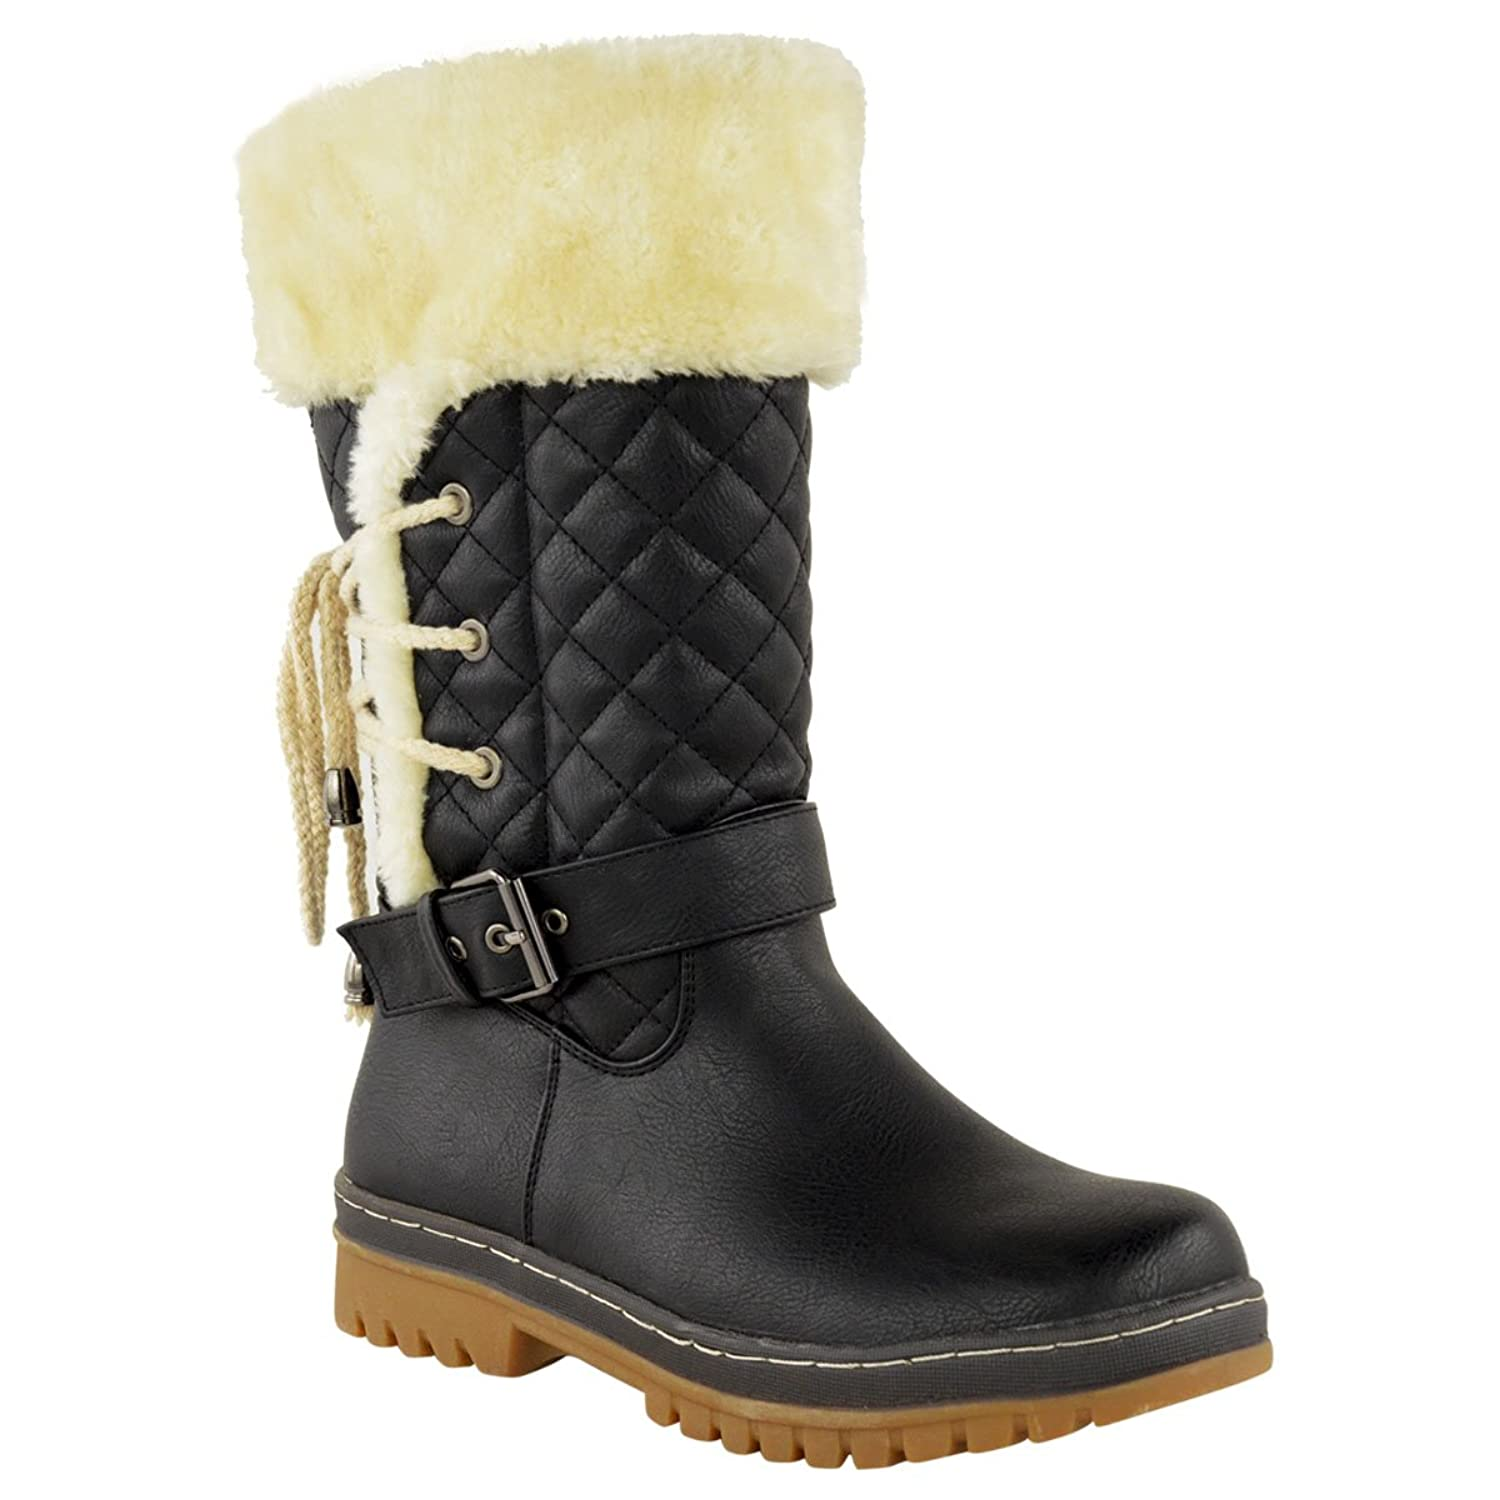 Womens Ladies Flat Knee High Calf Winter Snow Fur Lined Ankle Boots Grip Sole Size GC_6154